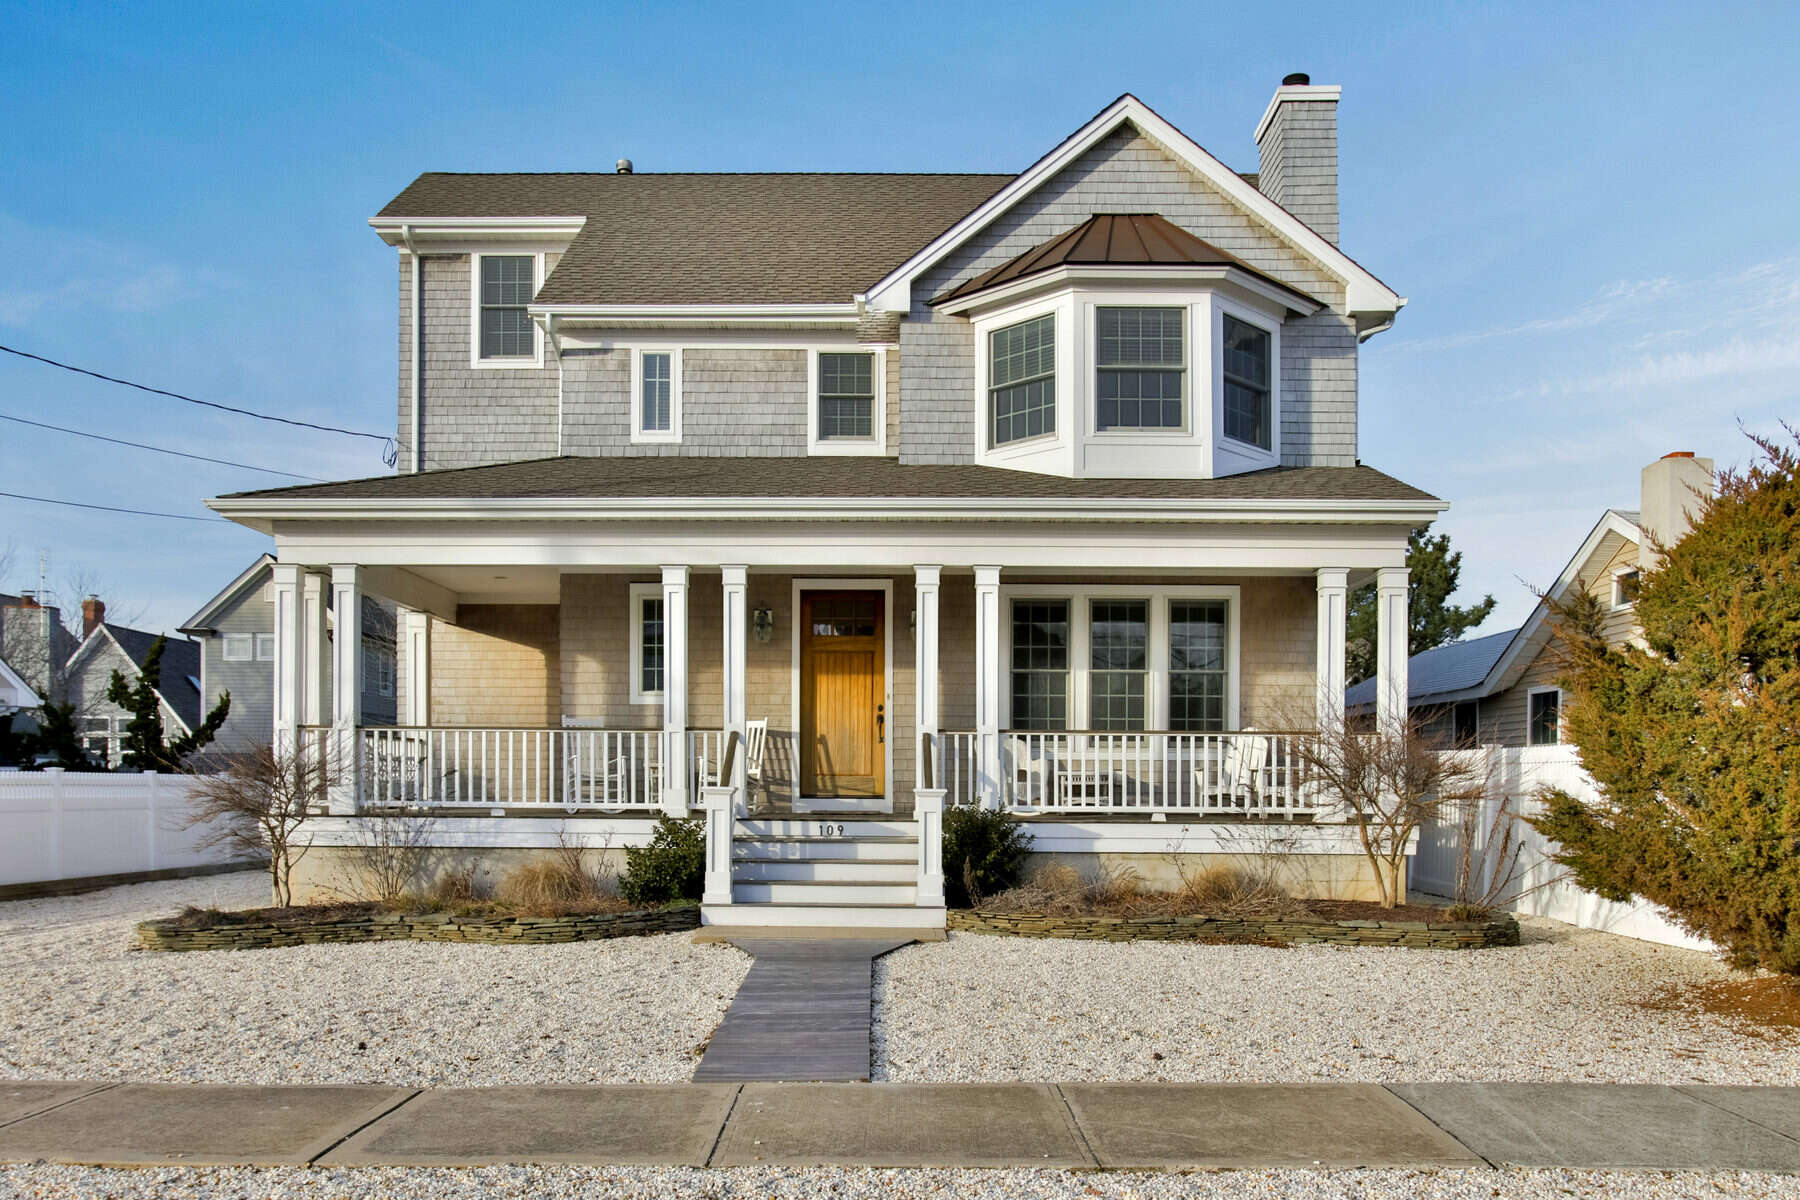 Single Family for Sale at 109 6th Avenue Normandy Beach, New Jersey 08739 United States